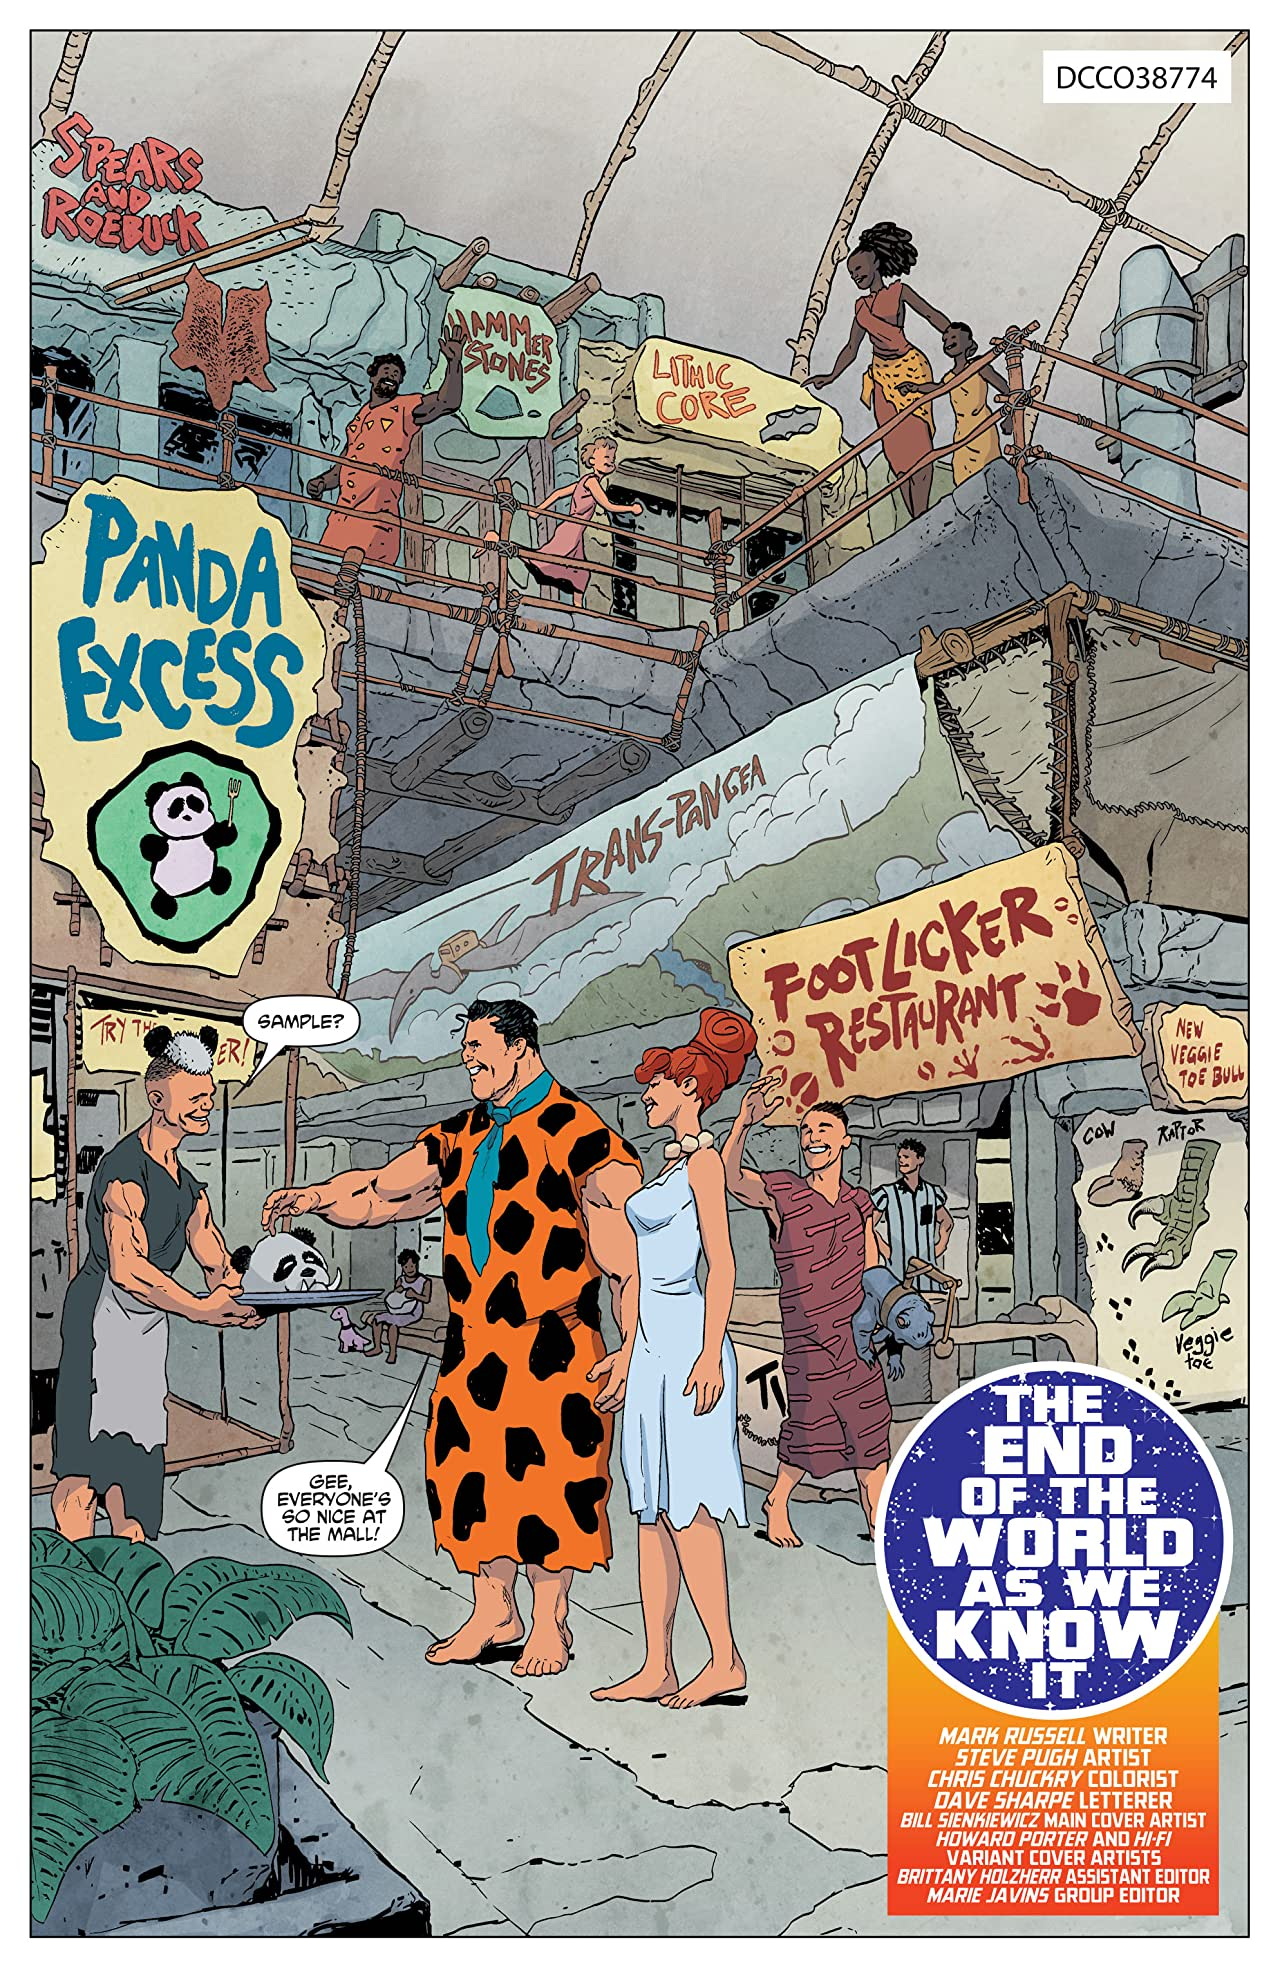 The Flintstones (2016-) #6